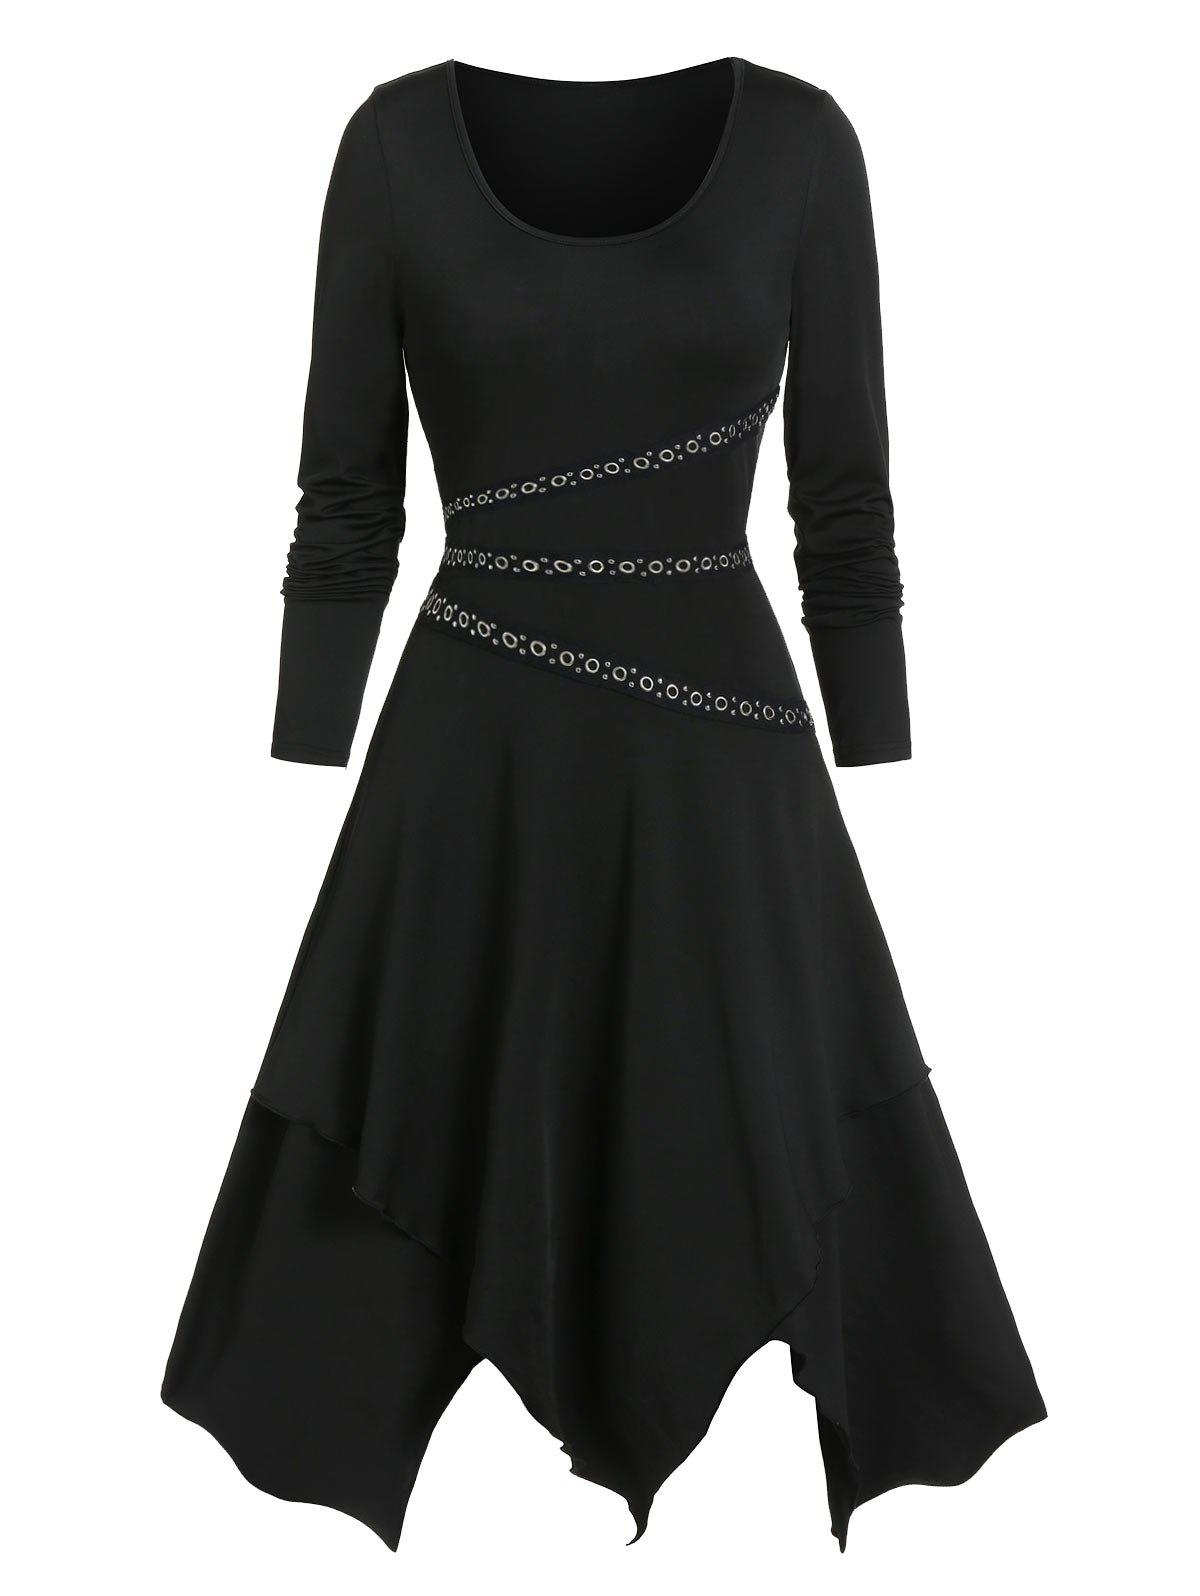 Grommet Strap Long Sleeve Asymmetric Dress - BLACK M